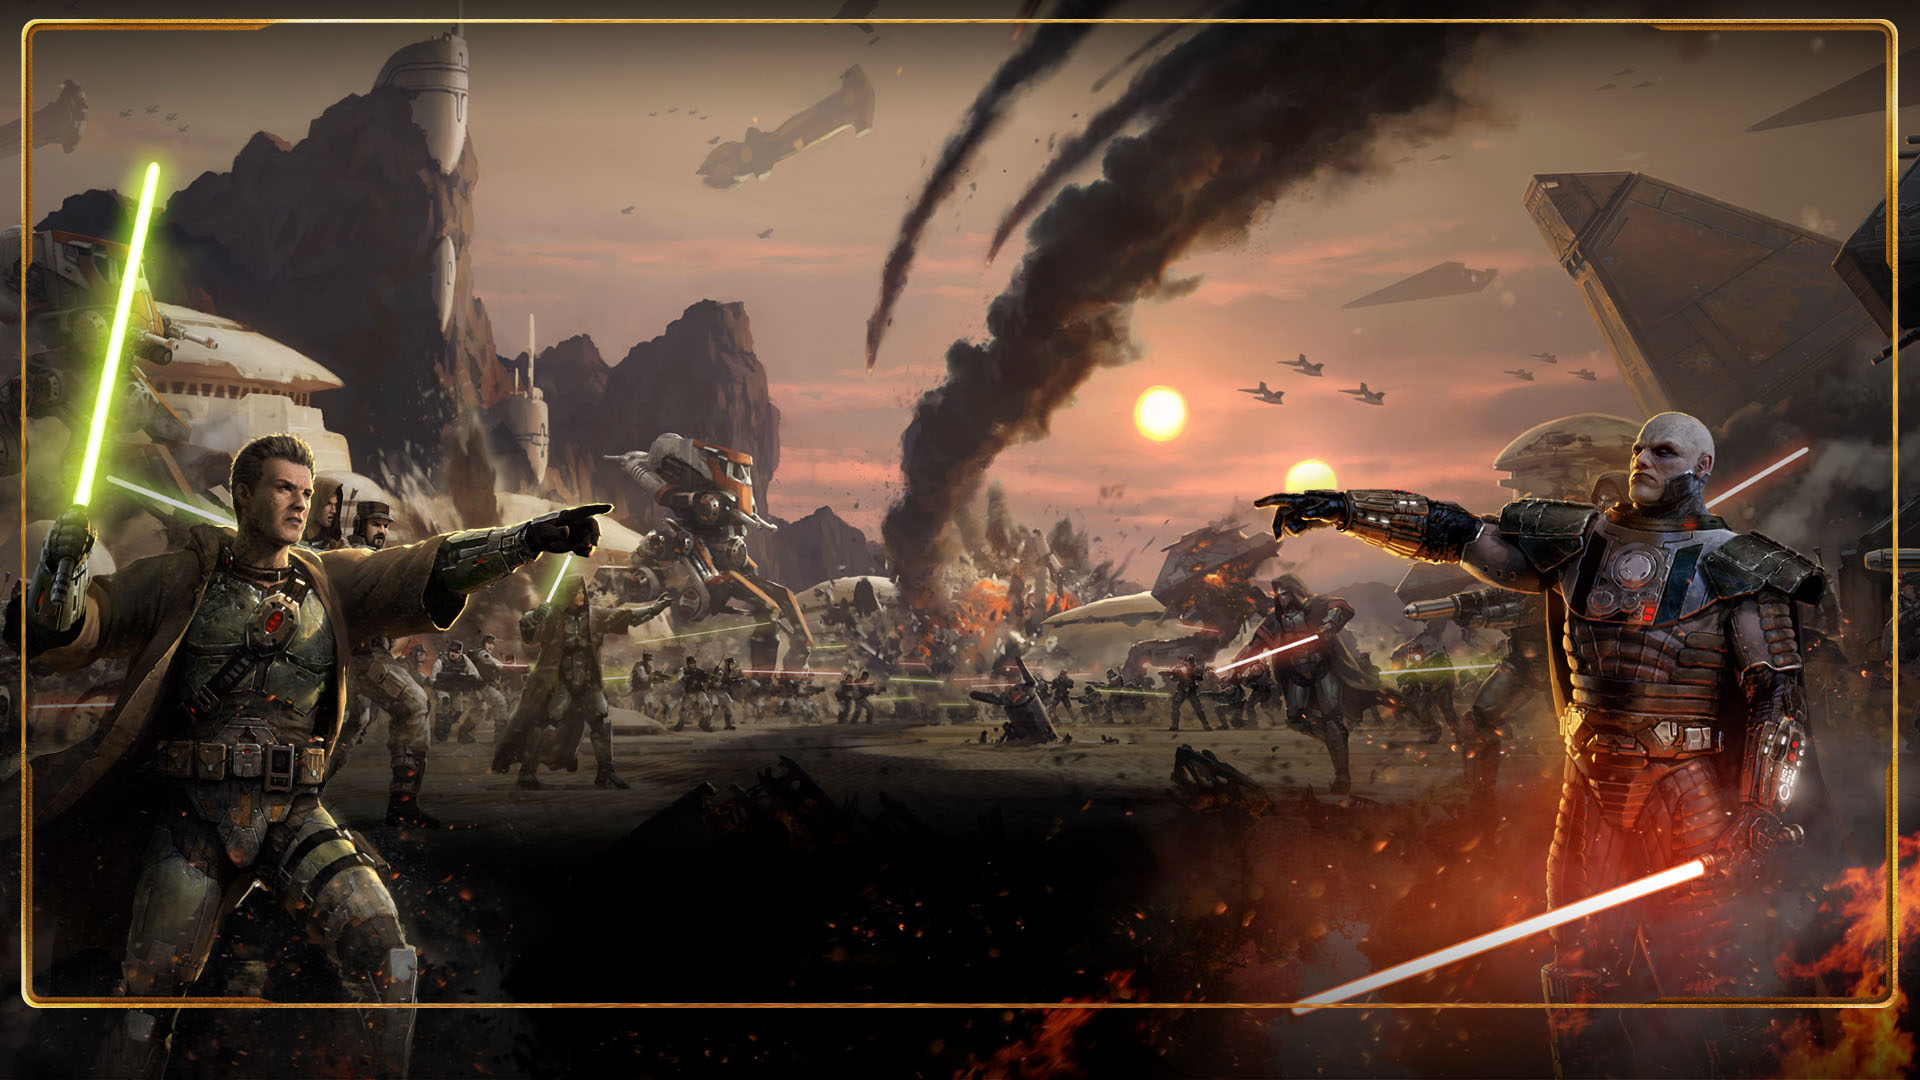 Star Wars the Old Republic HD wallpapers free Download - photo#19